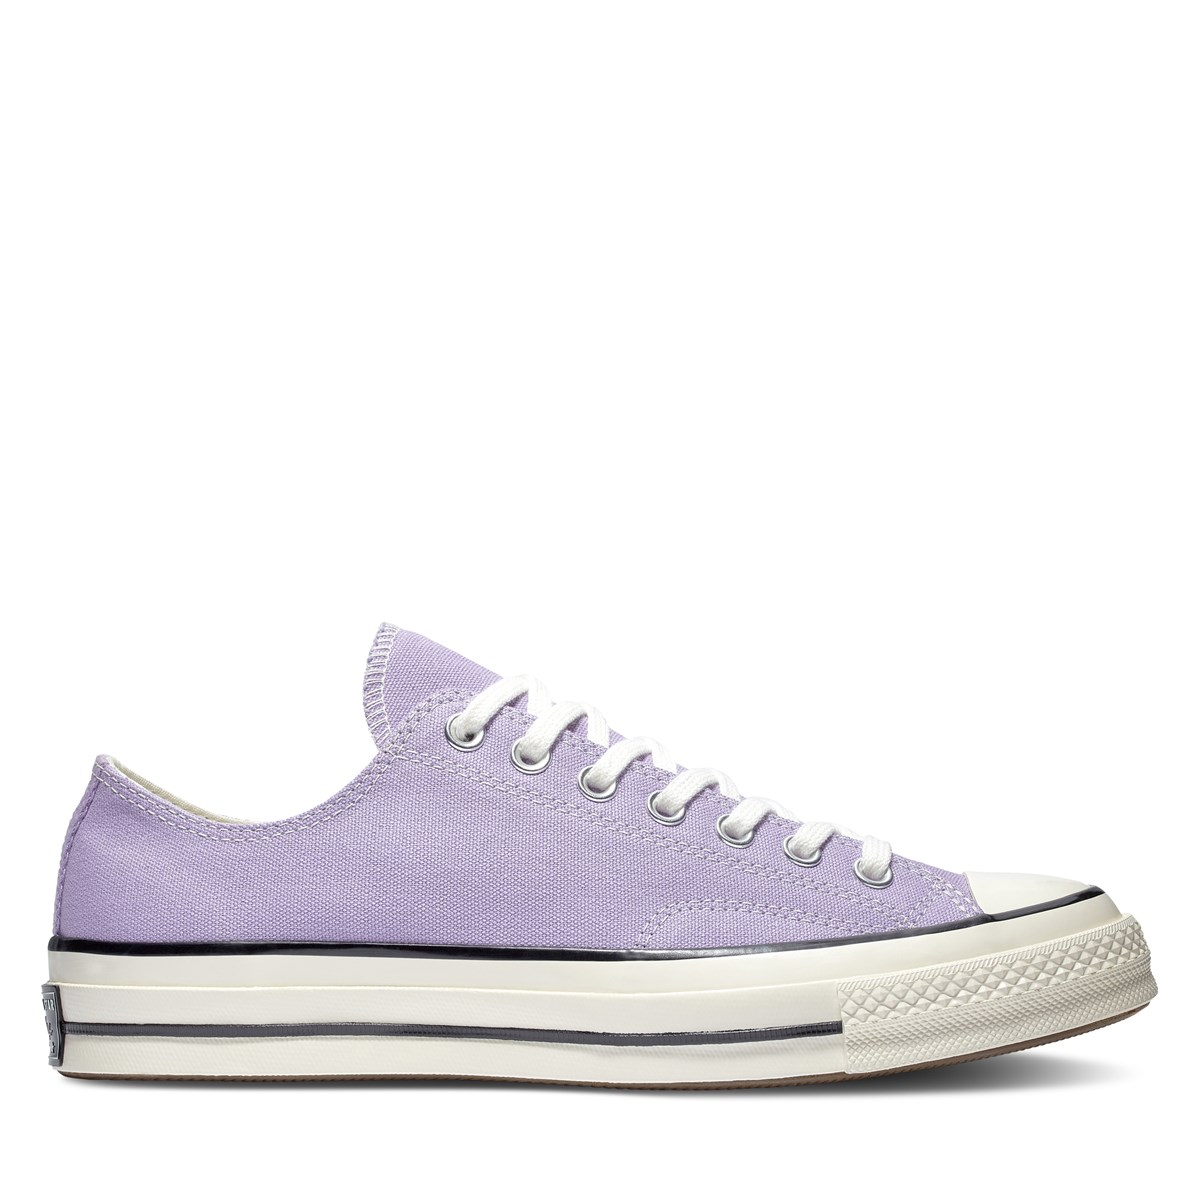 Women's Chuck 70 Ox Sneakers in Lilac